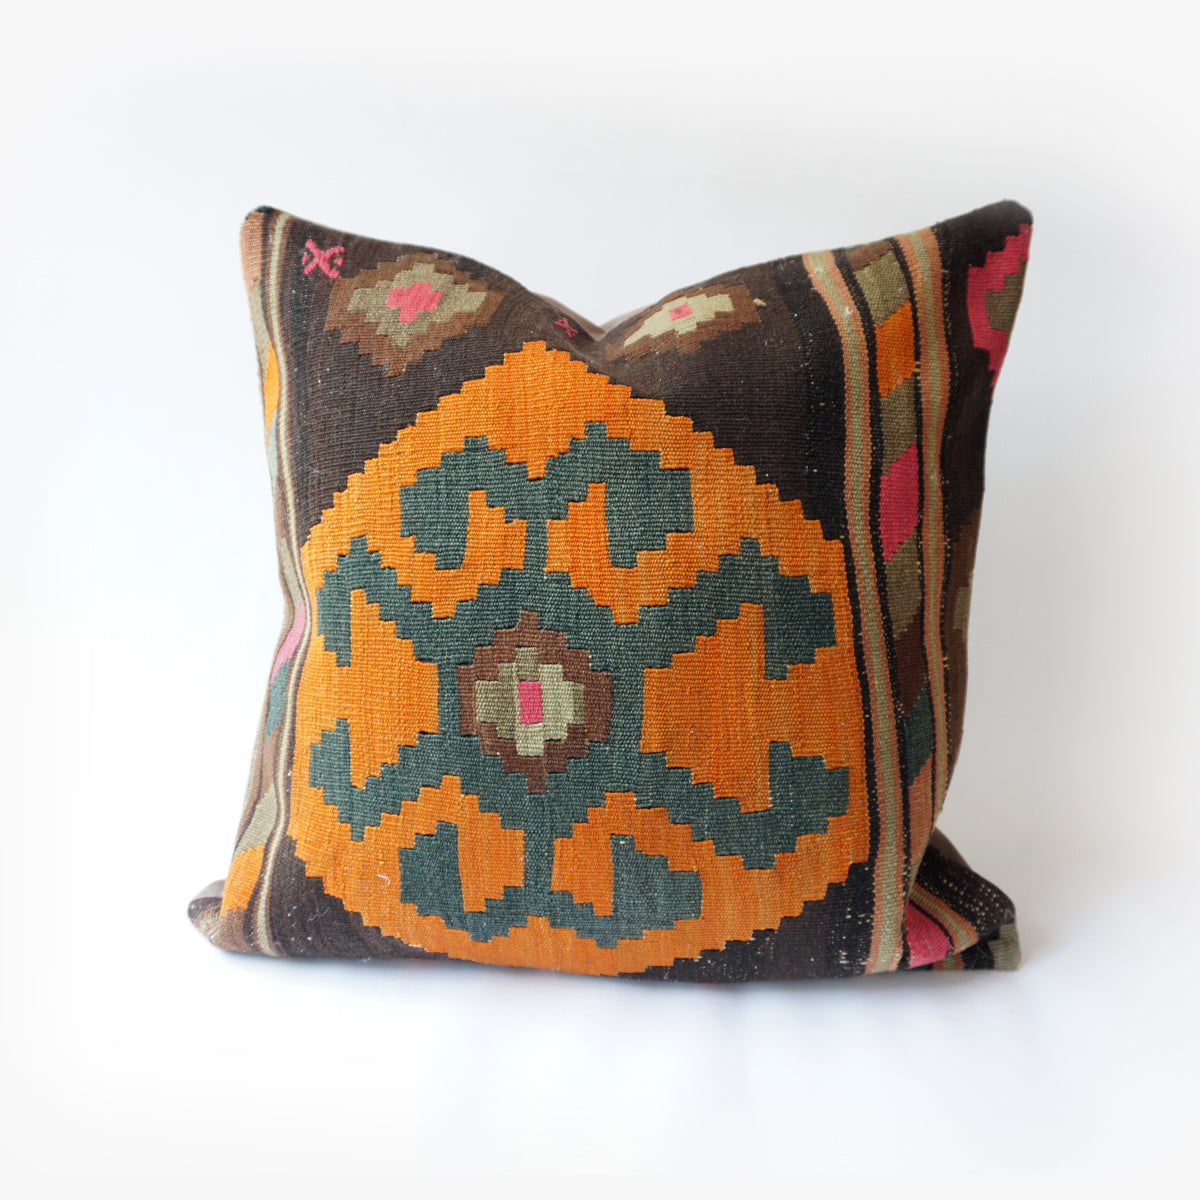 24x24 Kilim pillowcase made from recycled handwoven vintage Turkish kilims.  Zipper closure. Insert not included. Natural dyes. Wool. One of a kind.   Colors include Brown, Orange, Green, Pink, Olive and Tan.